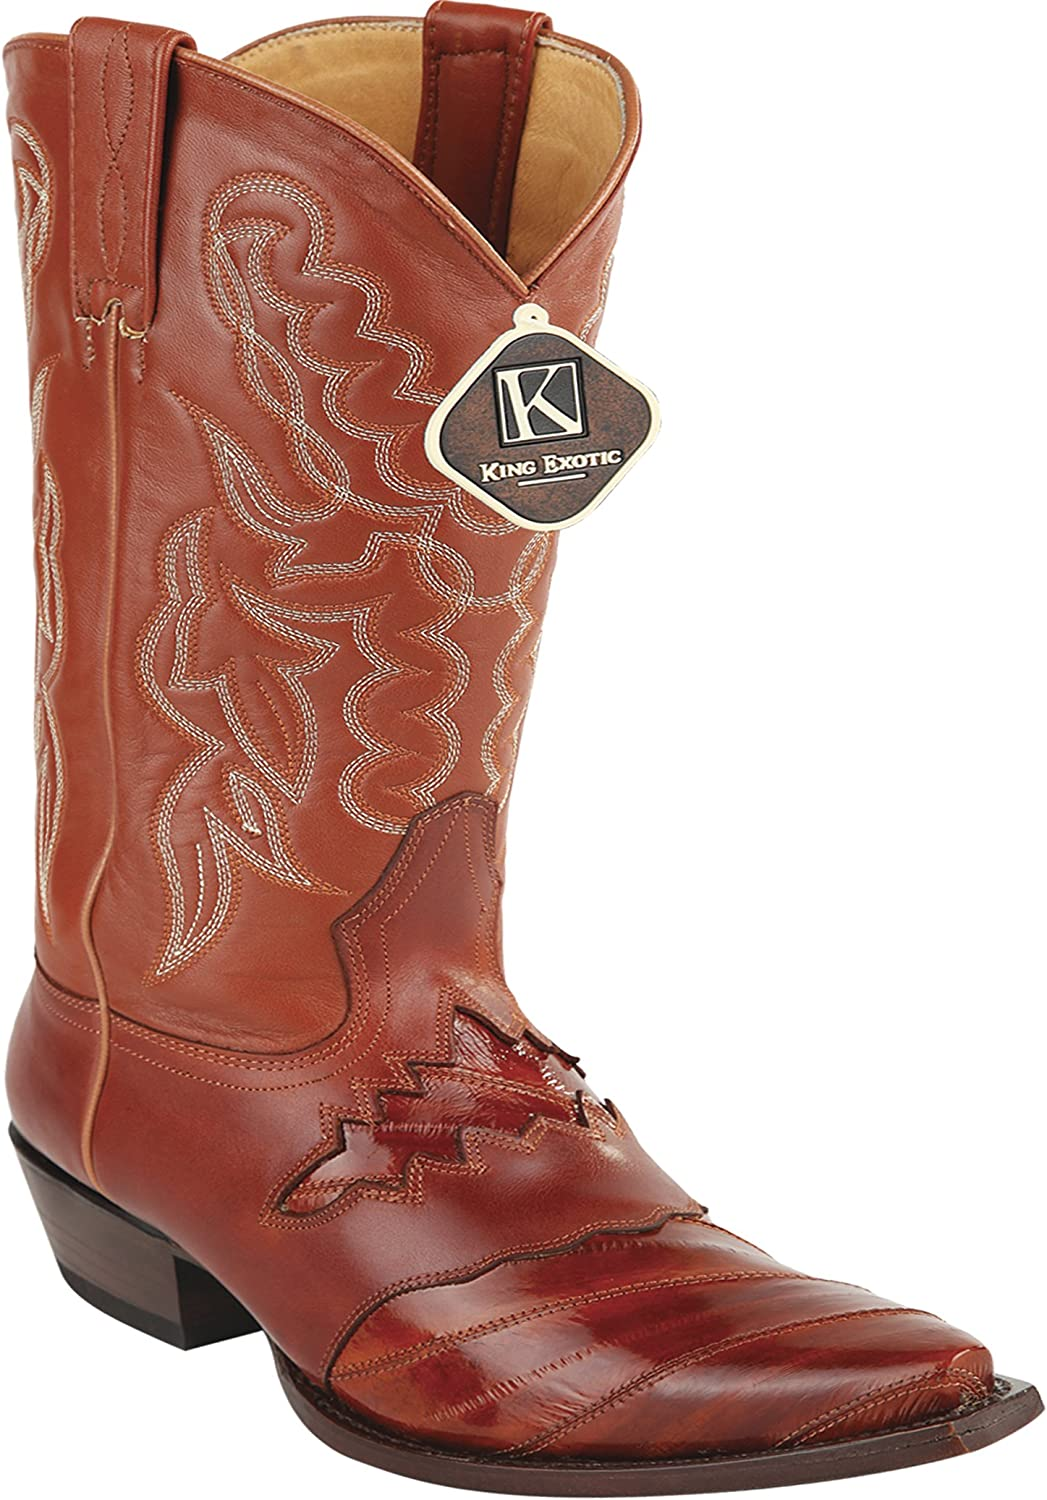 Women's Snip Toe Cognac Genuine Leather Sadded EEL Skin Western Boots